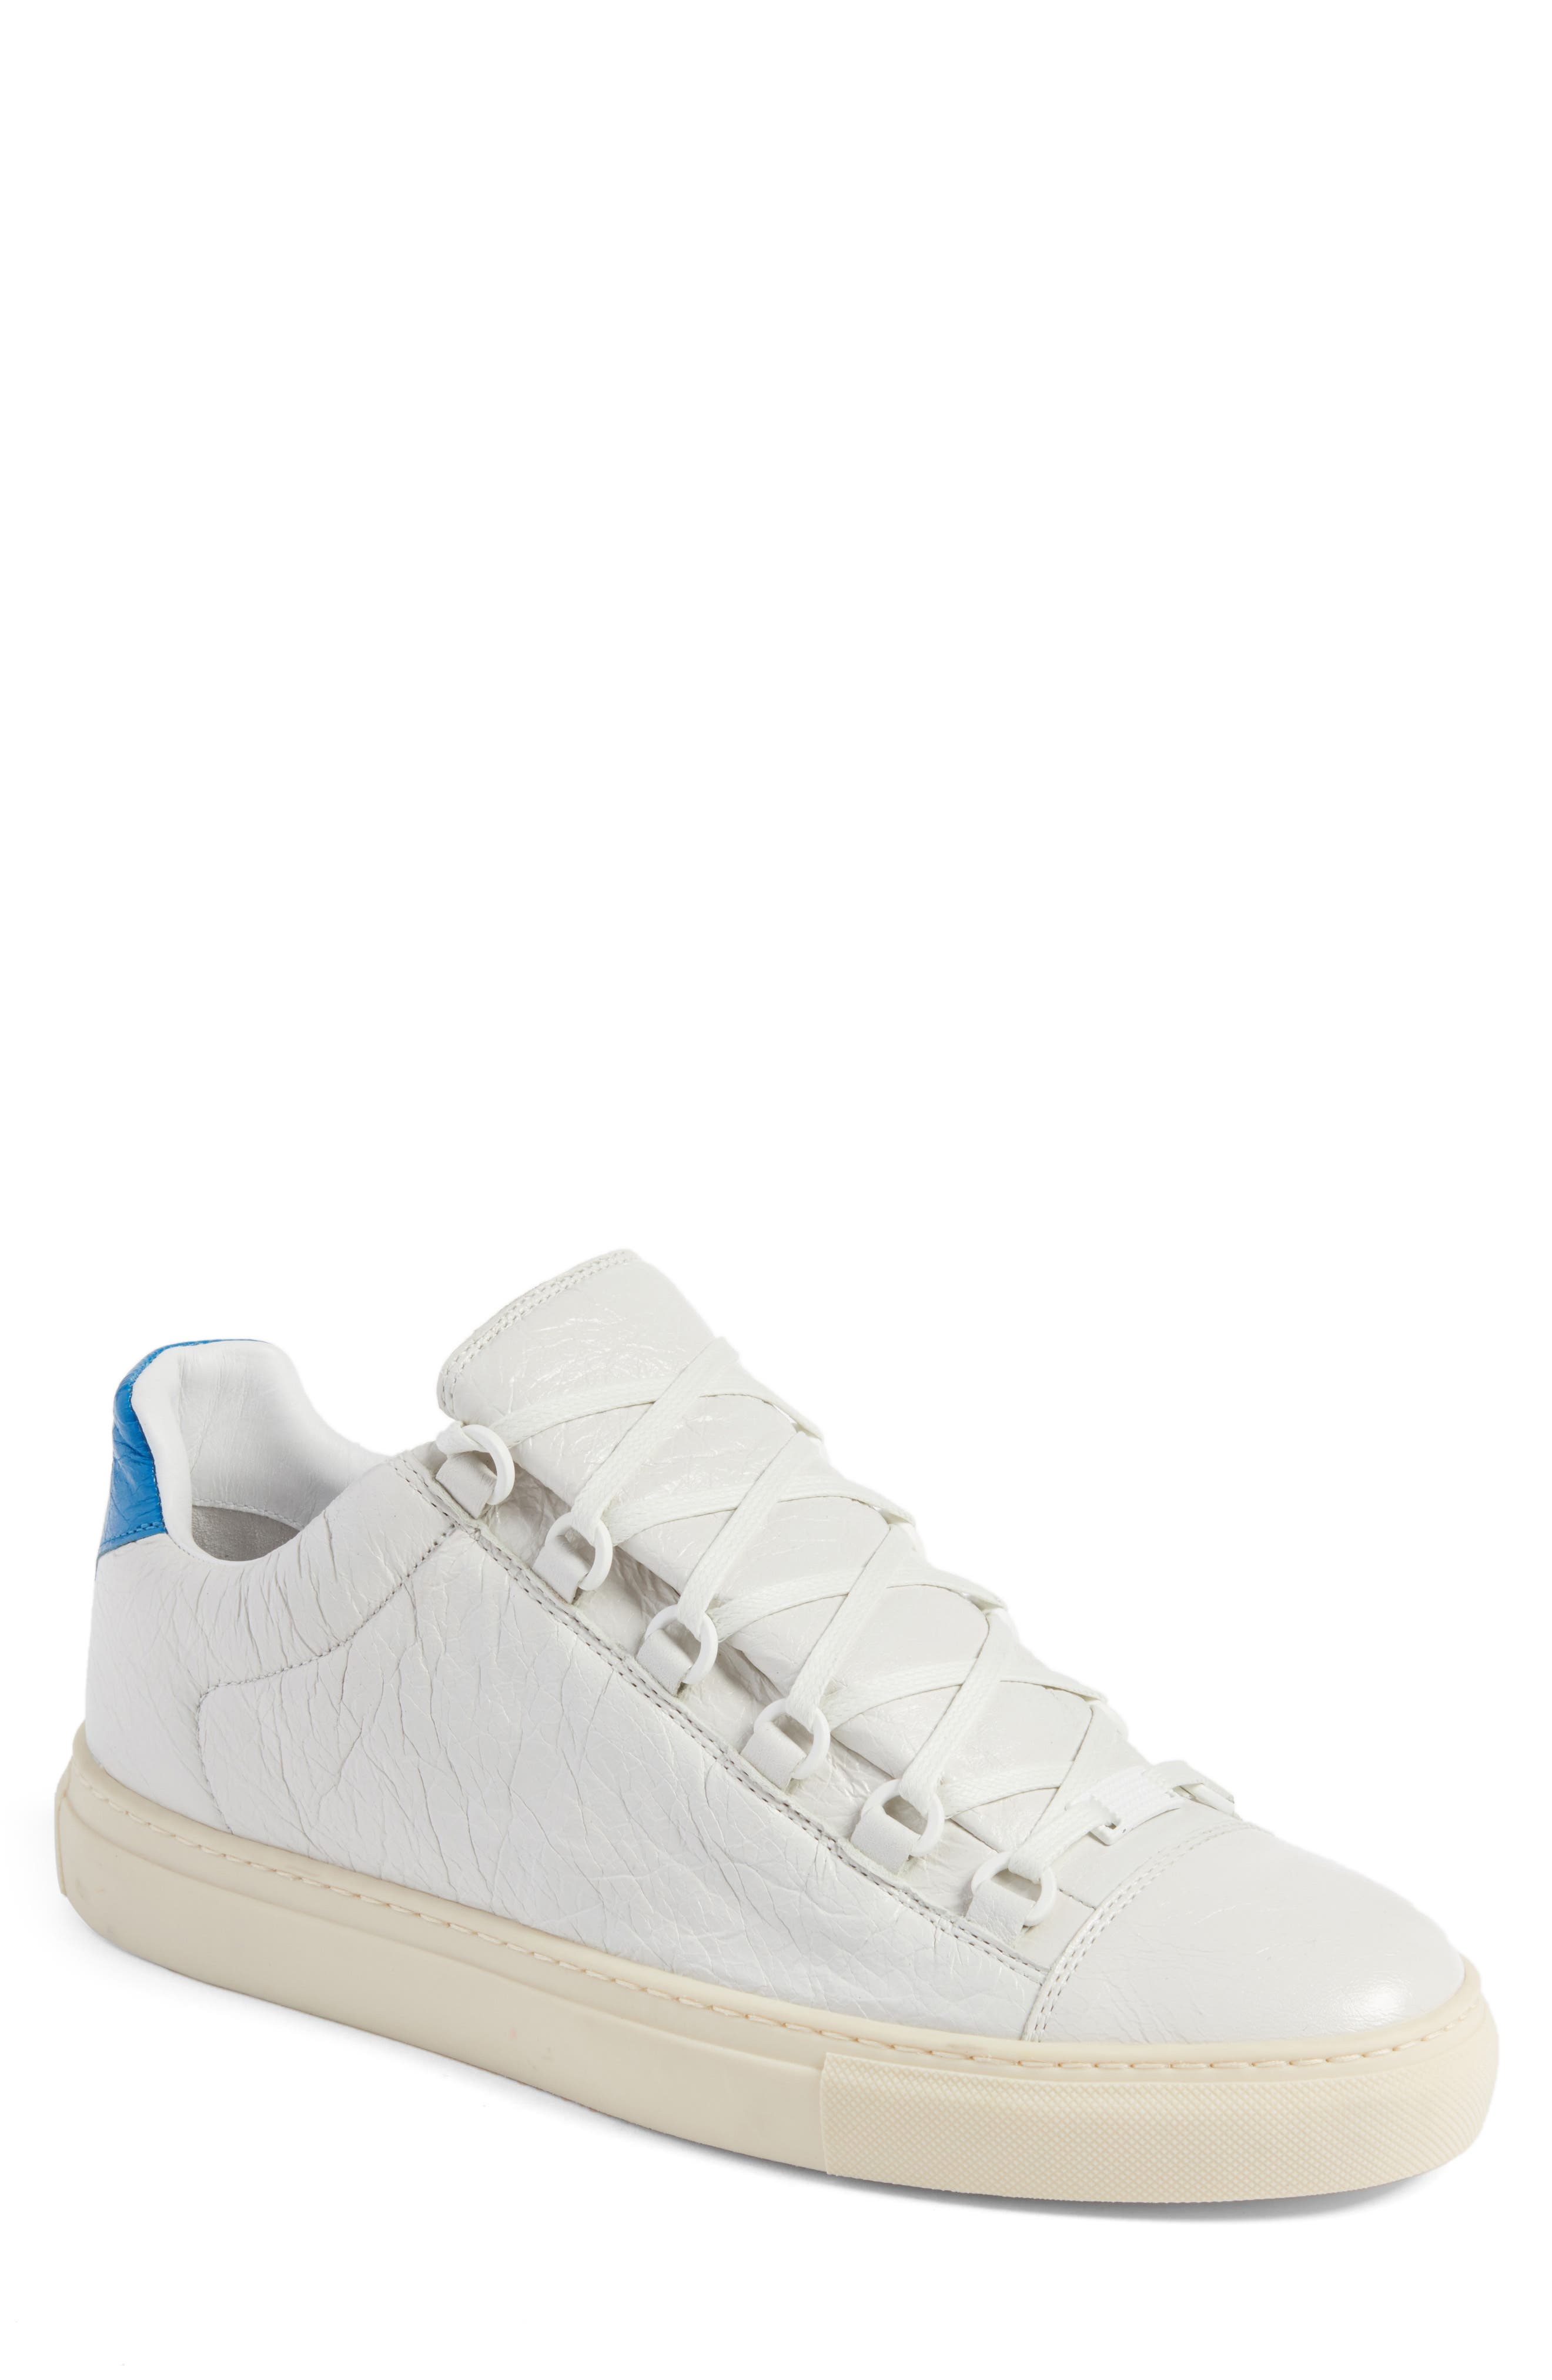 Balenciaga Arena Low Sneaker (Men)